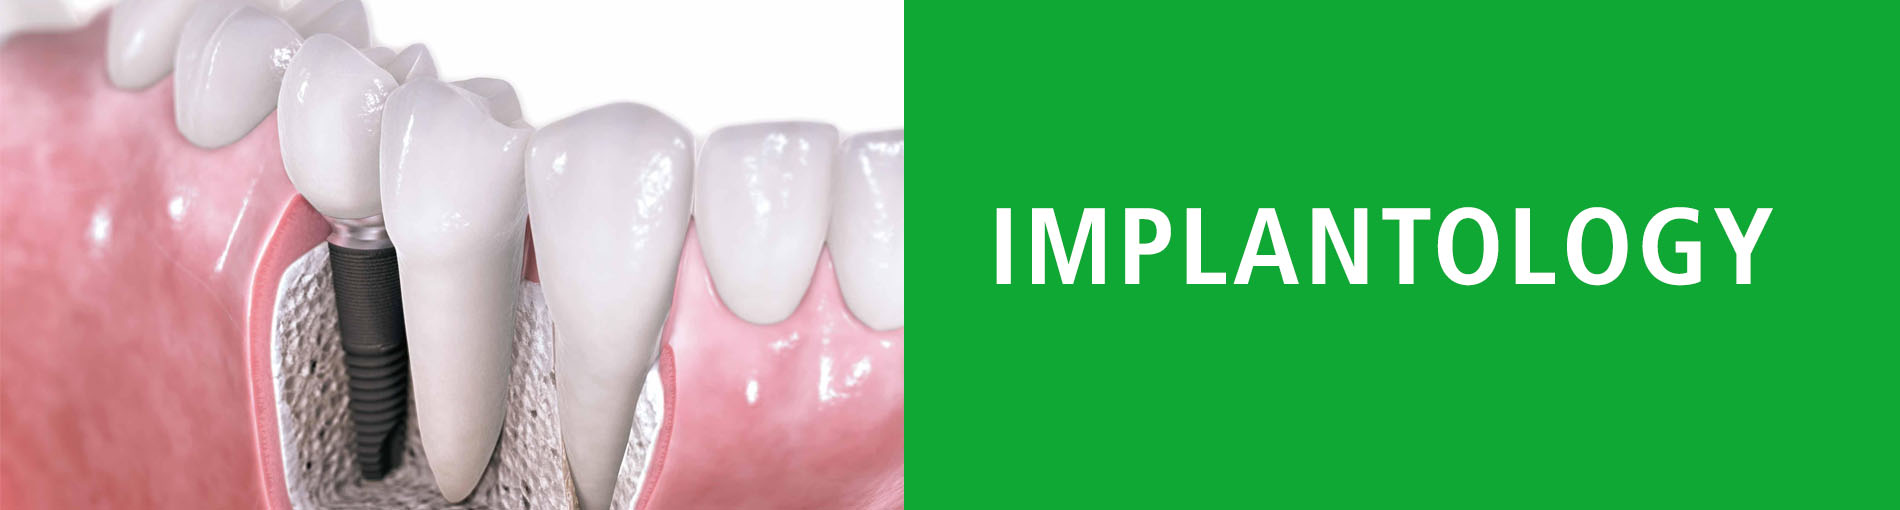 Implantology-Specialist-Dentist-Smile-White-smile-Healthy-smile-Patient-Success-Clinic-Clinics